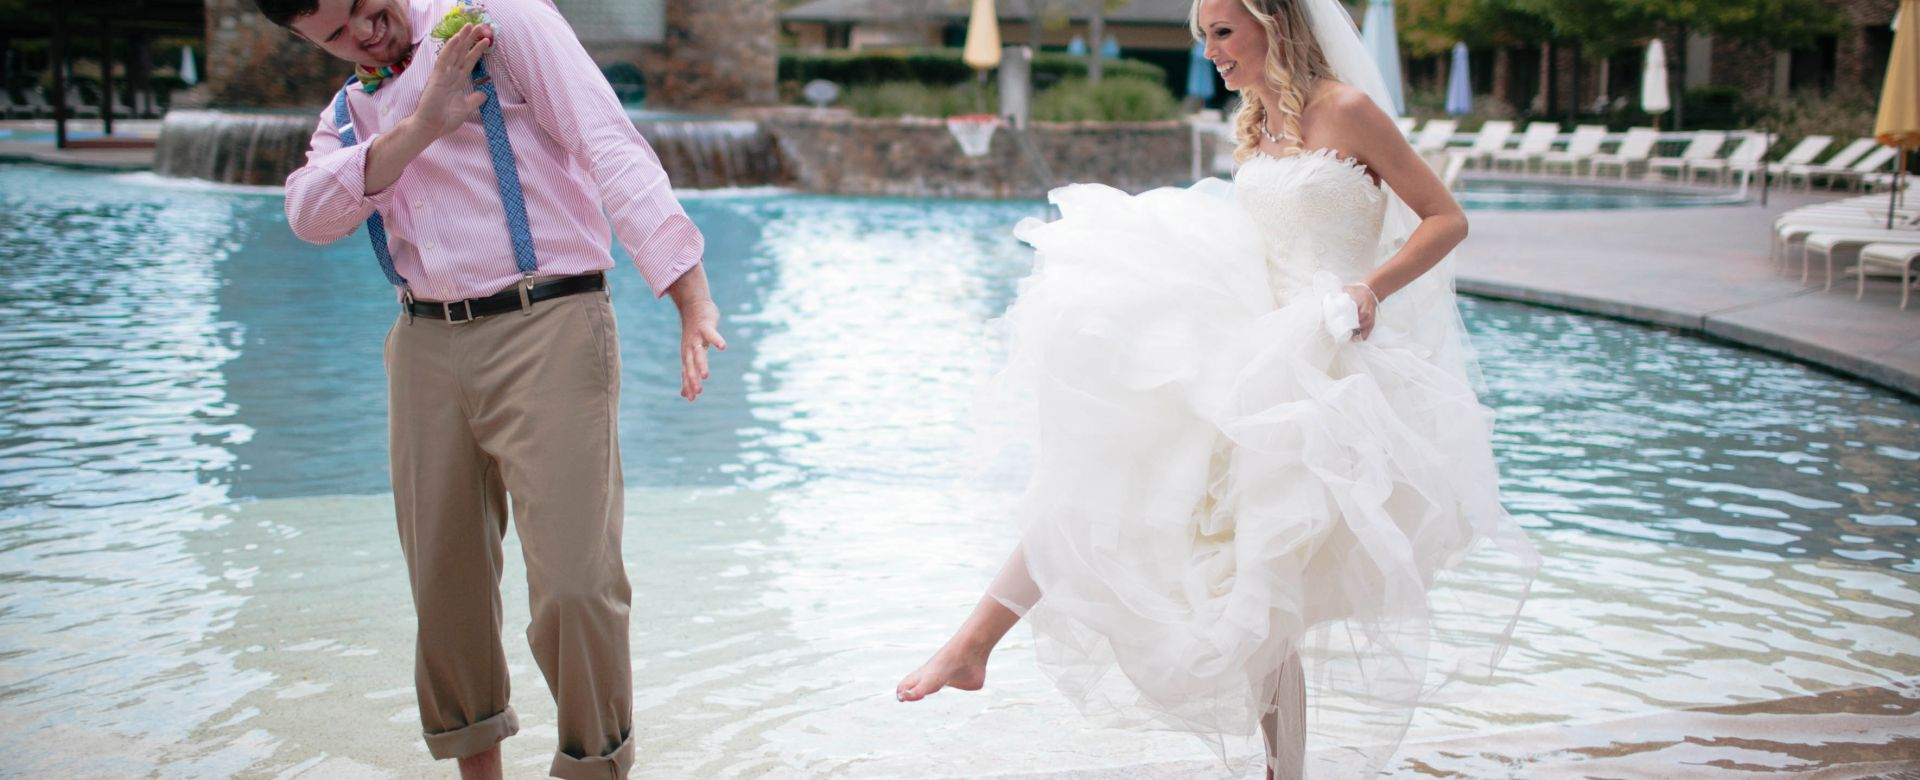 A bride and groom play by the pool side.